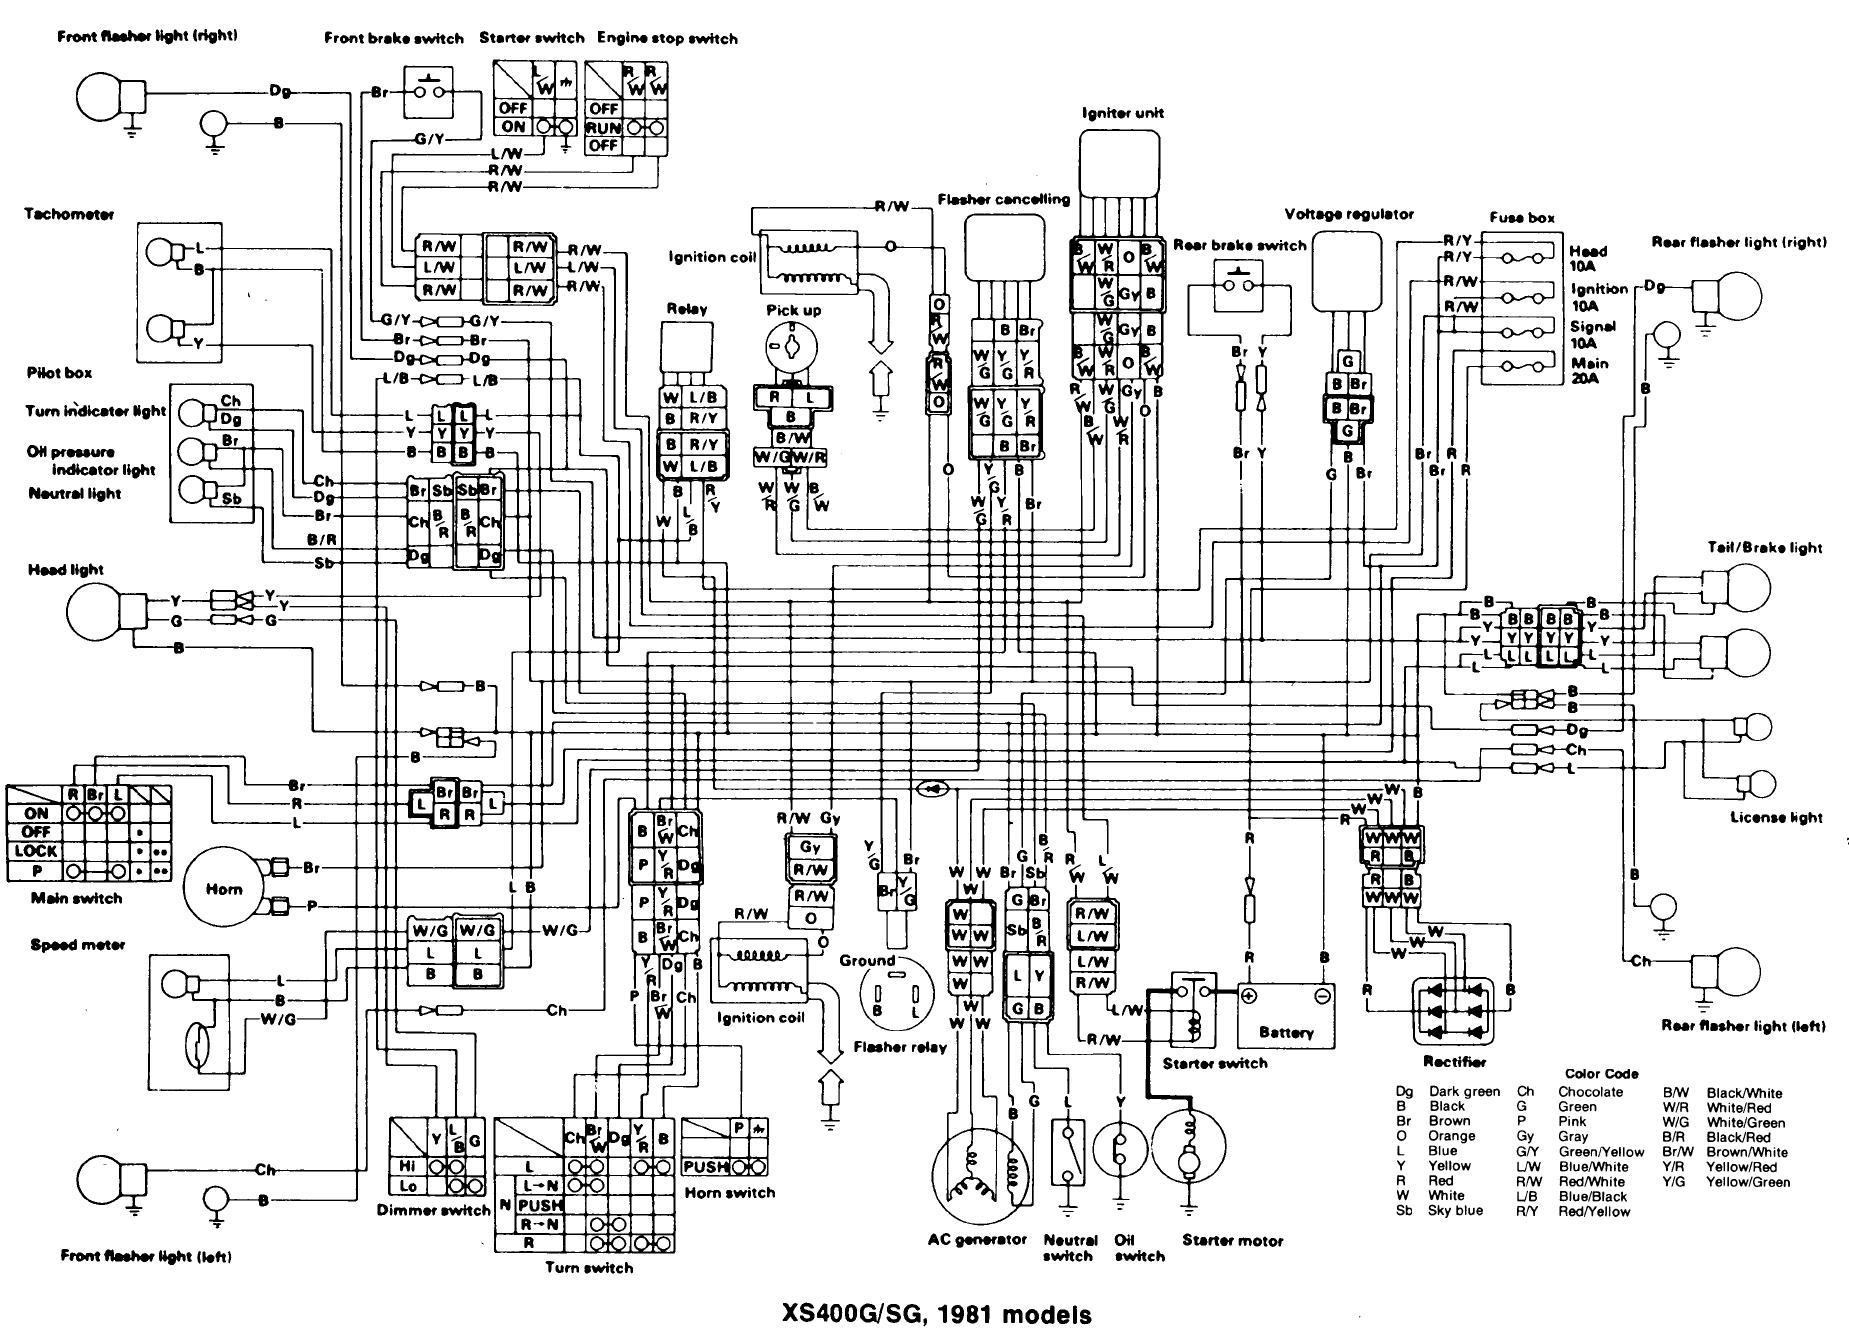 Diagram Yamaha Grizzly 700 Wiring Diagram Full